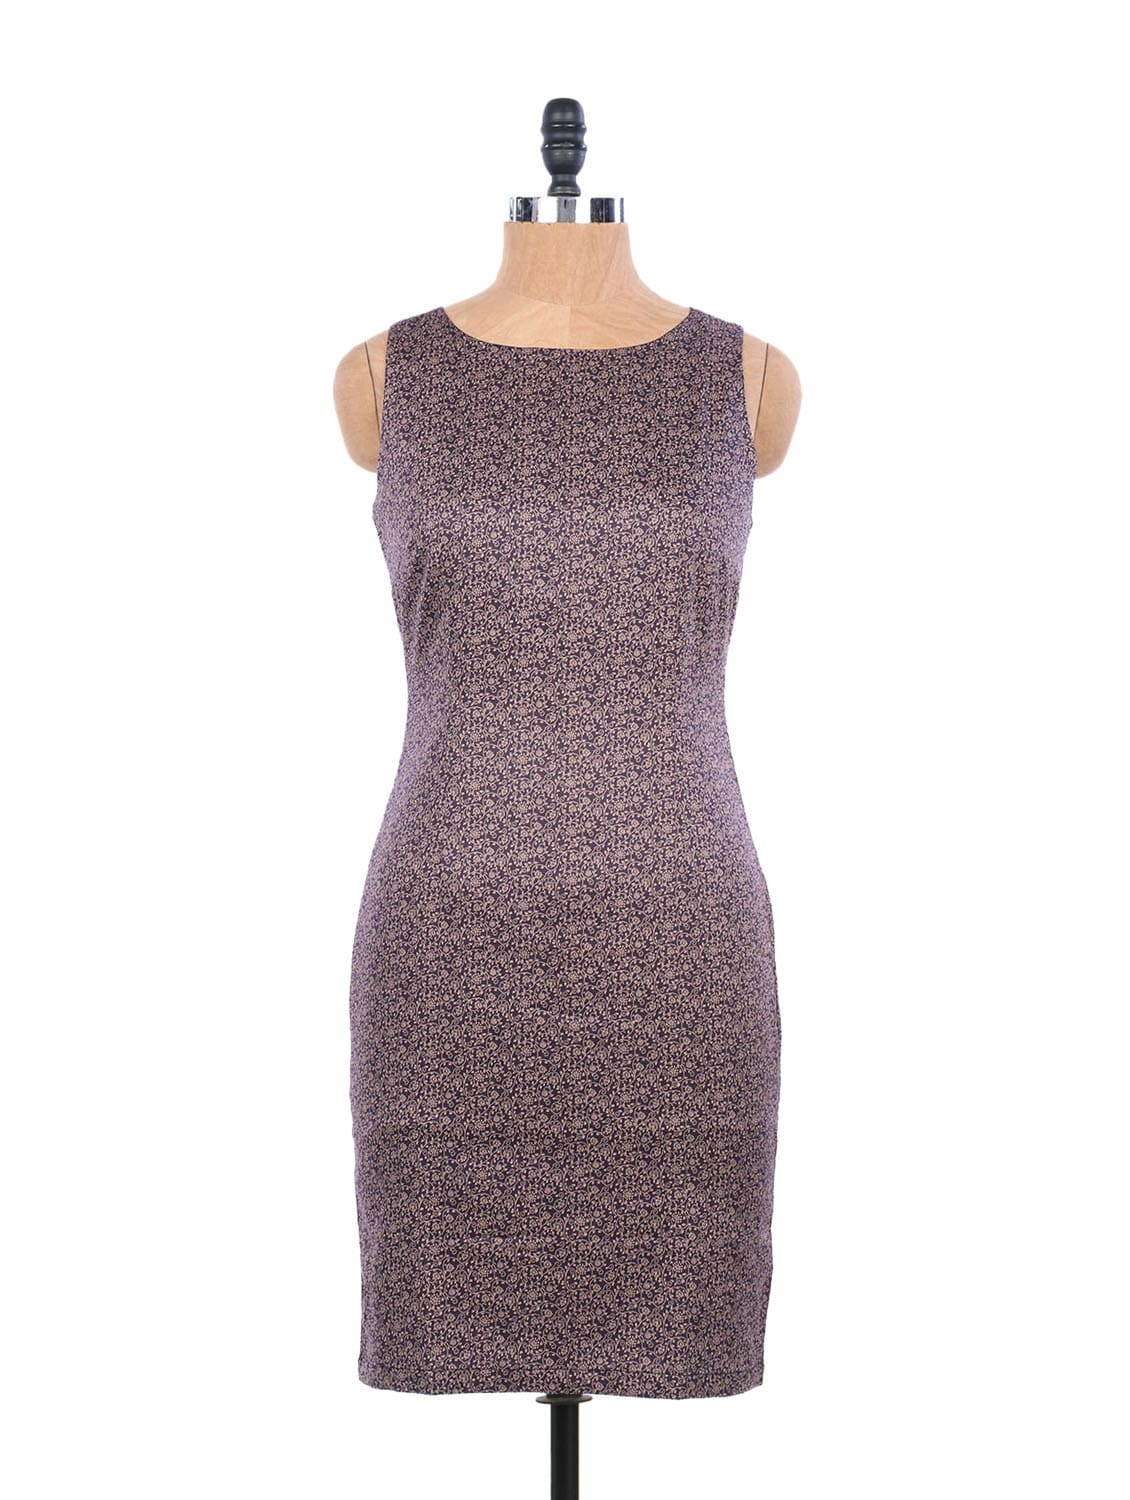 Trendy Purple Printed Dress With A Back Slit - EIGHTEEN27